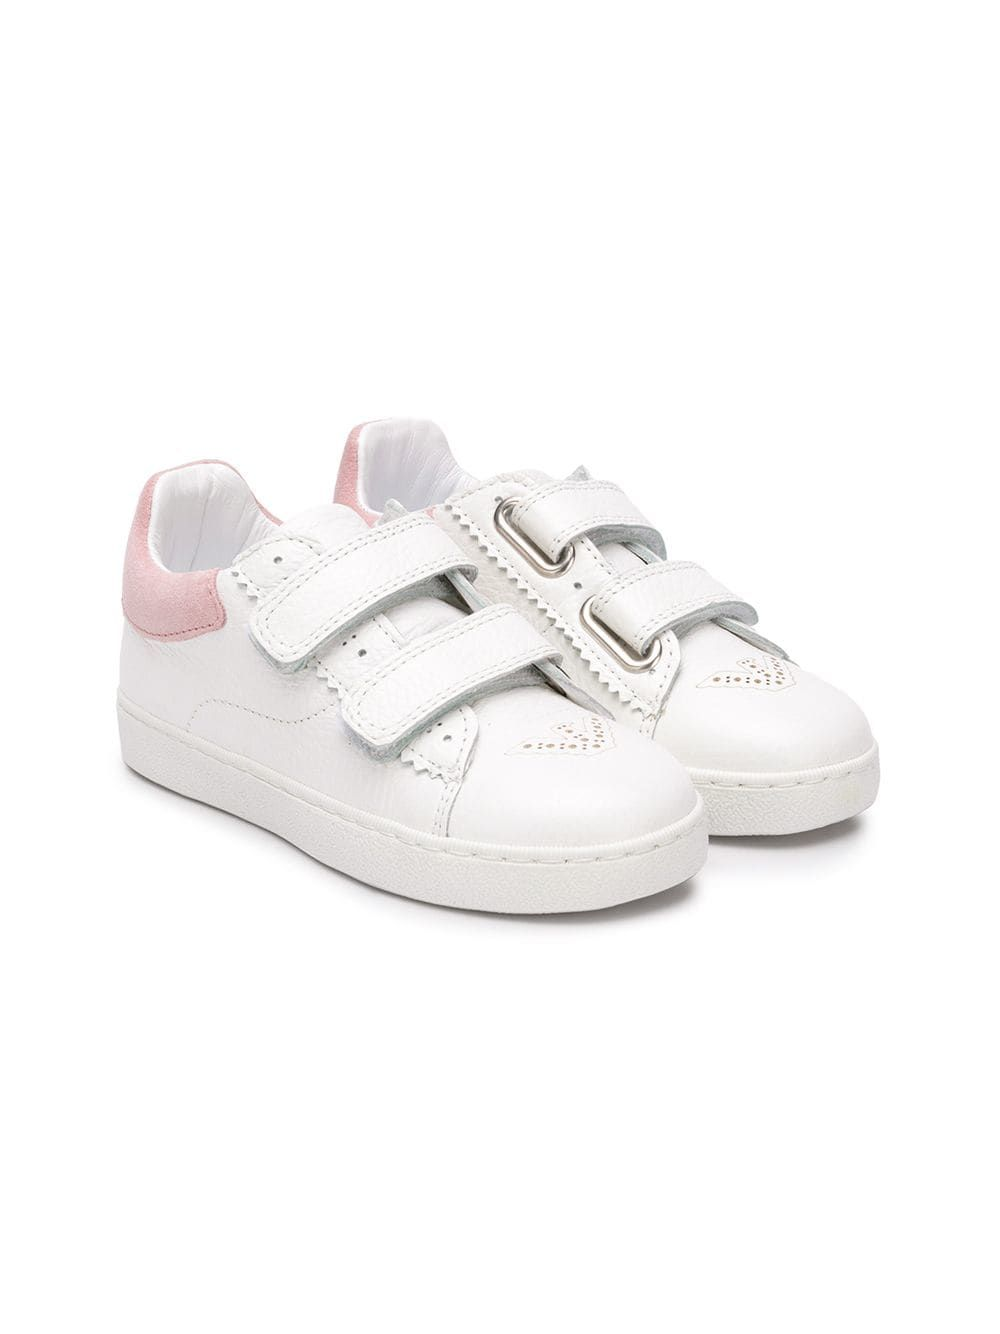 93adc8652 Emporio Armani Kids touch strap fastening sneakers